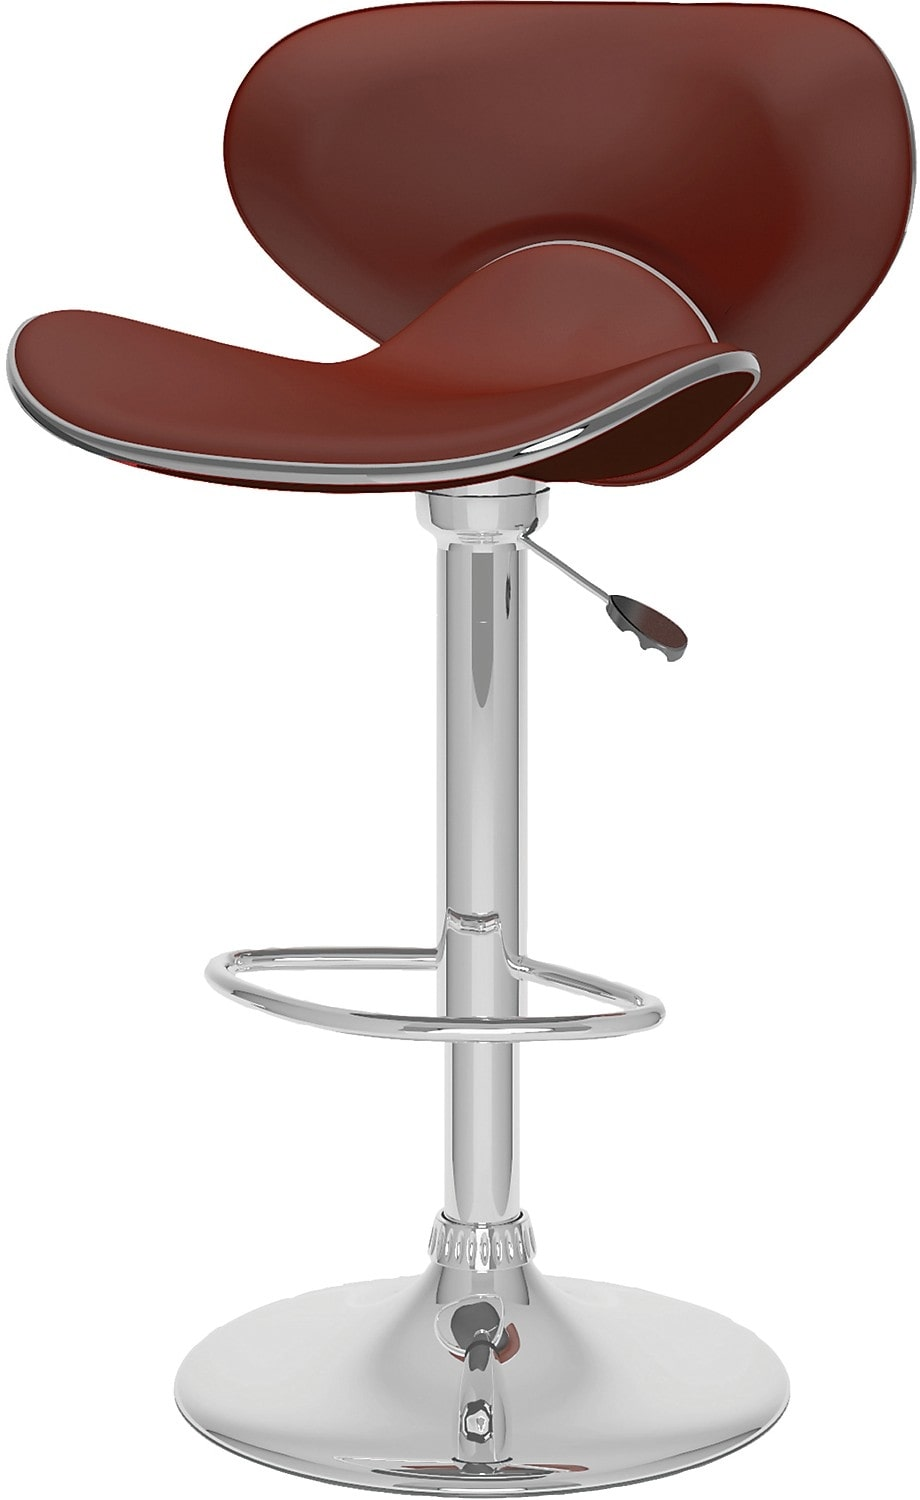 CorLiving Curved Form-Fitting Adjustable Bar Stool - Brown